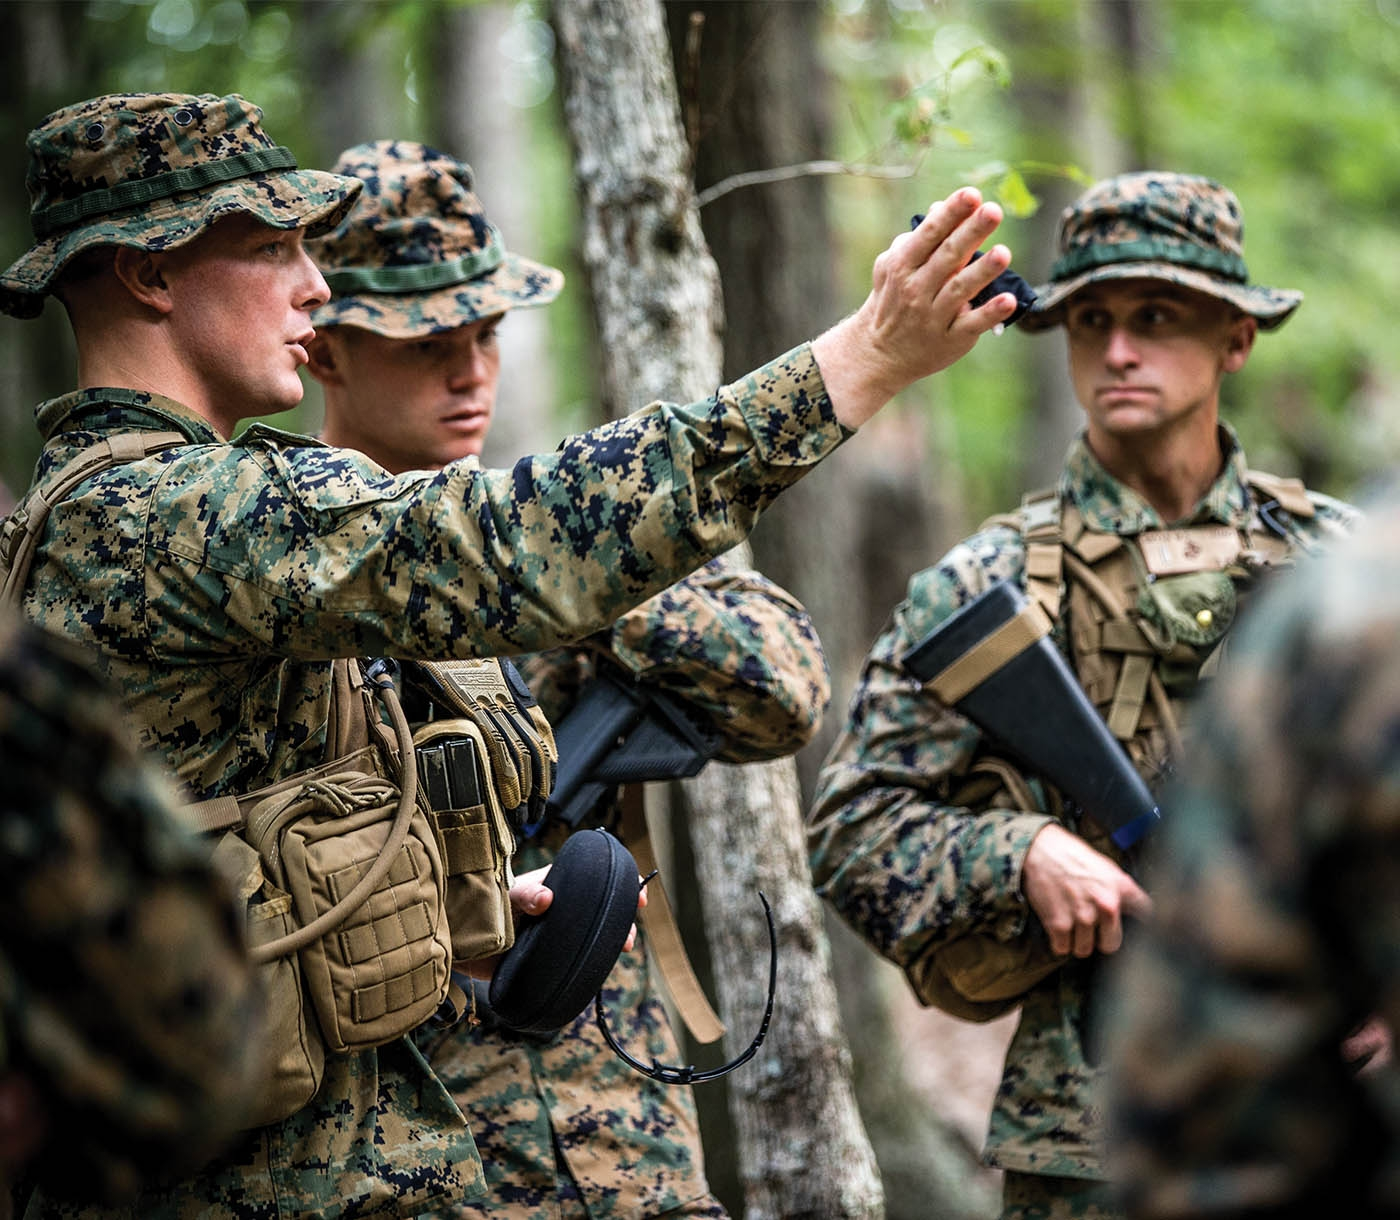 Marine giving orders